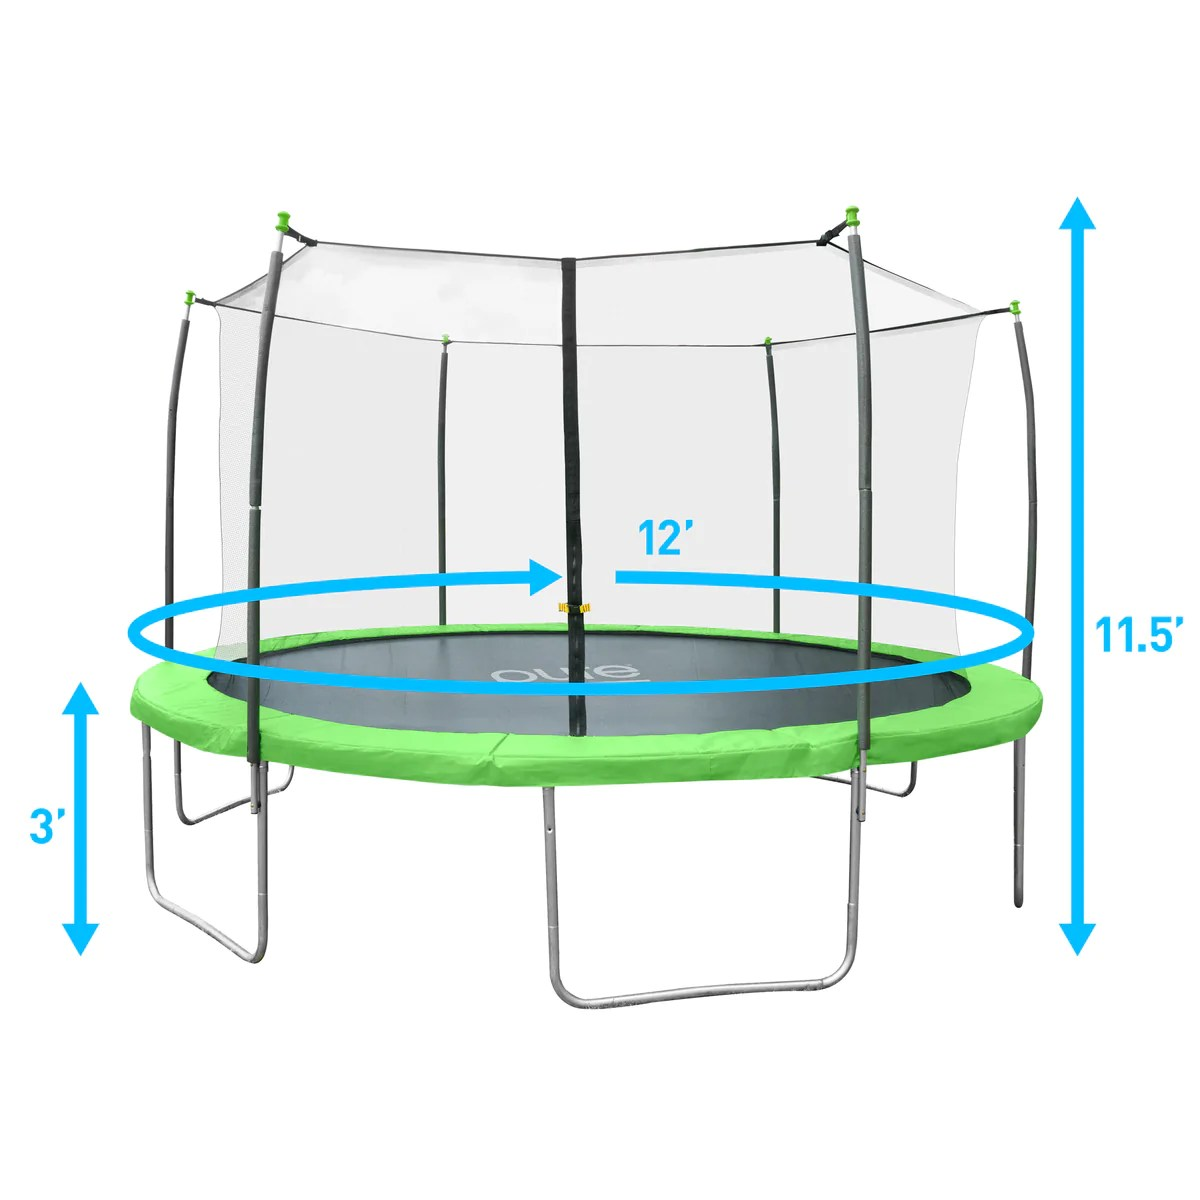 Pure Fun Dura-bounce 12-foot Trampoline With Enclosure